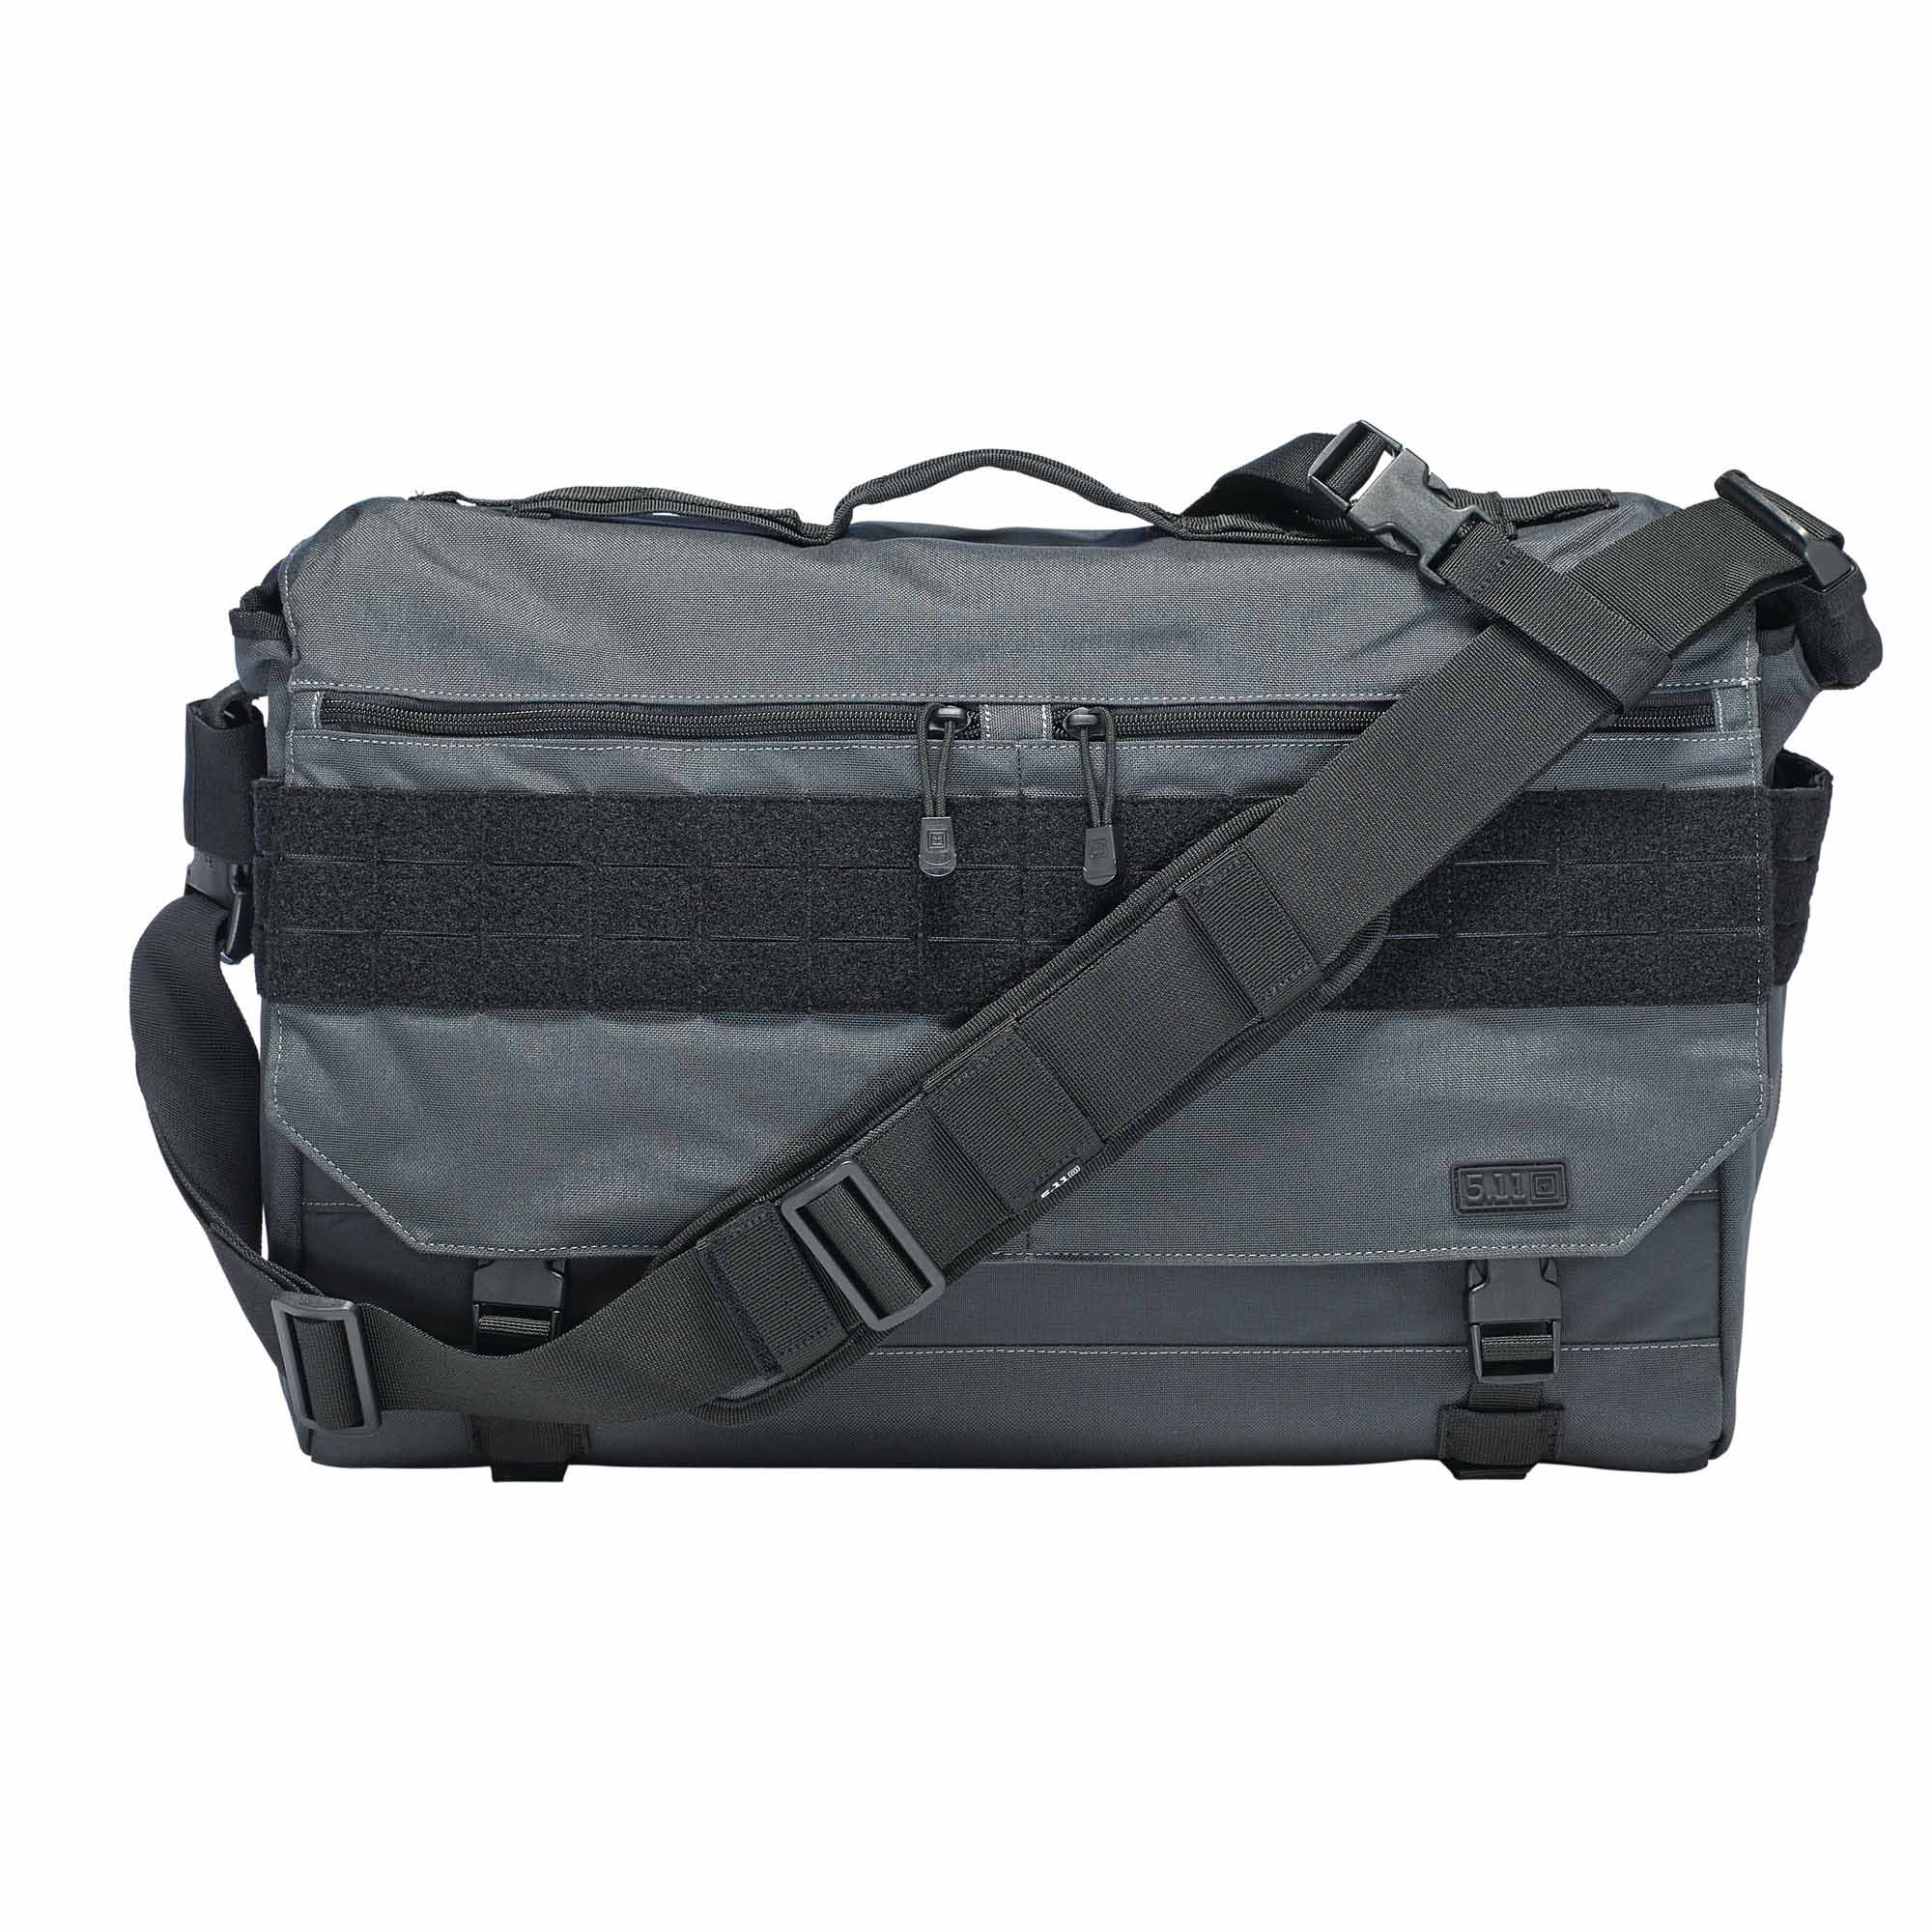 5.11 Tactical Rush Delivery XRAY 56178